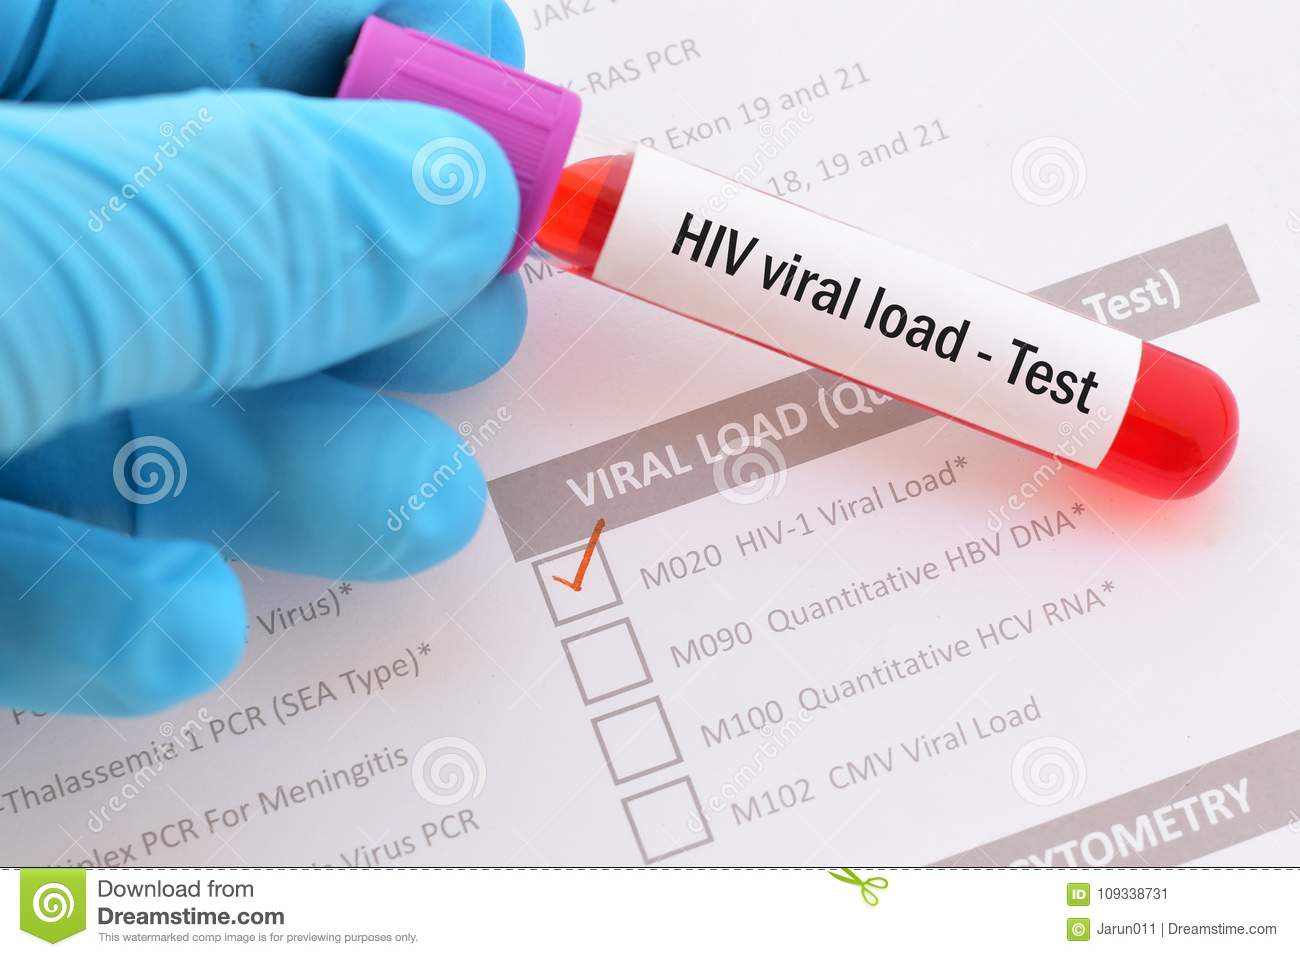 This image is related to Viral load - Source Wikipedia